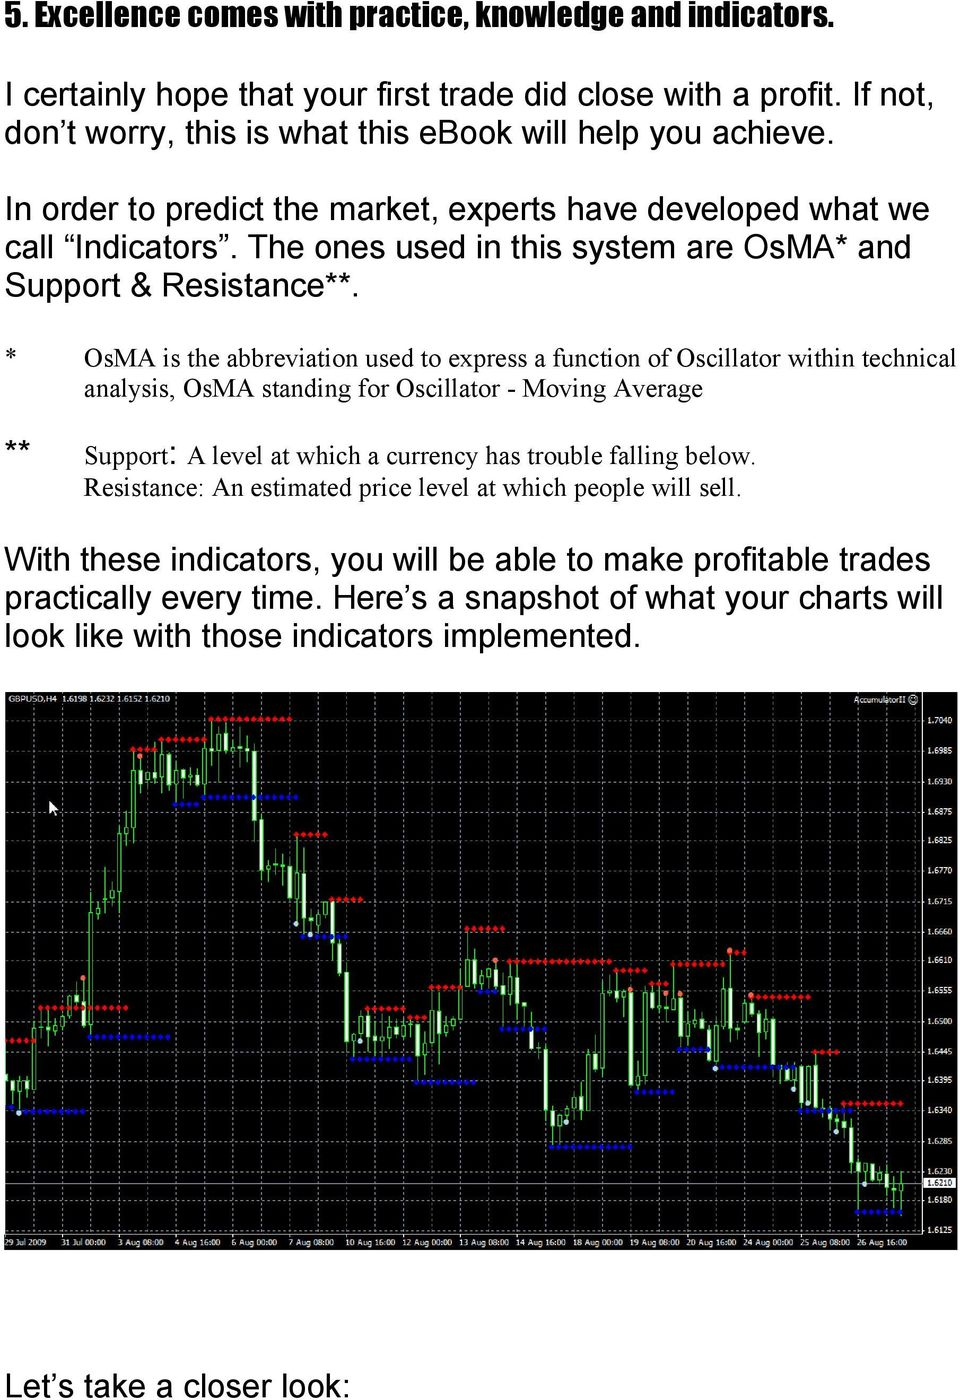 * OsMA is the abbreviation used to express a function of Oscillator within technical analysis, OsMA standing for Oscillator - Moving Average ** Support: A level at which a currency has trouble